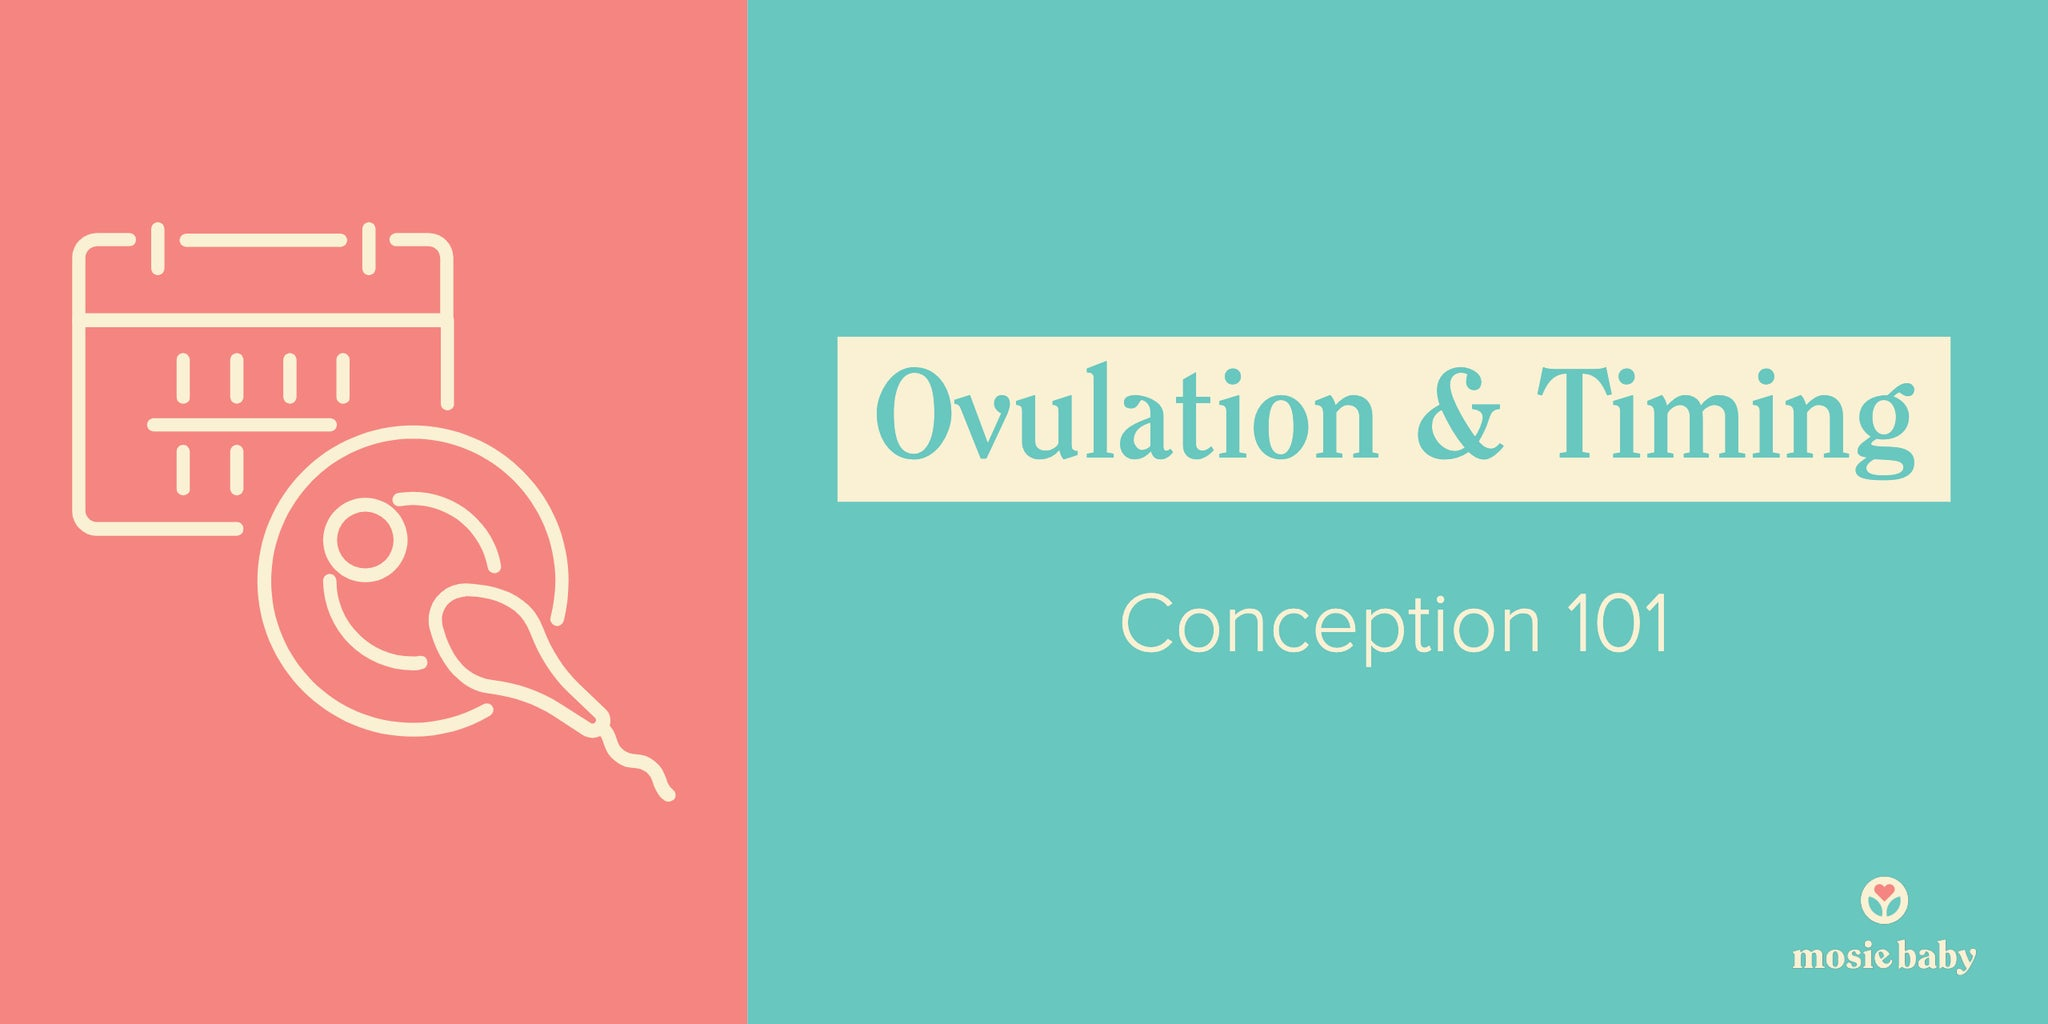 ovulation and timing, conception 101 graphic